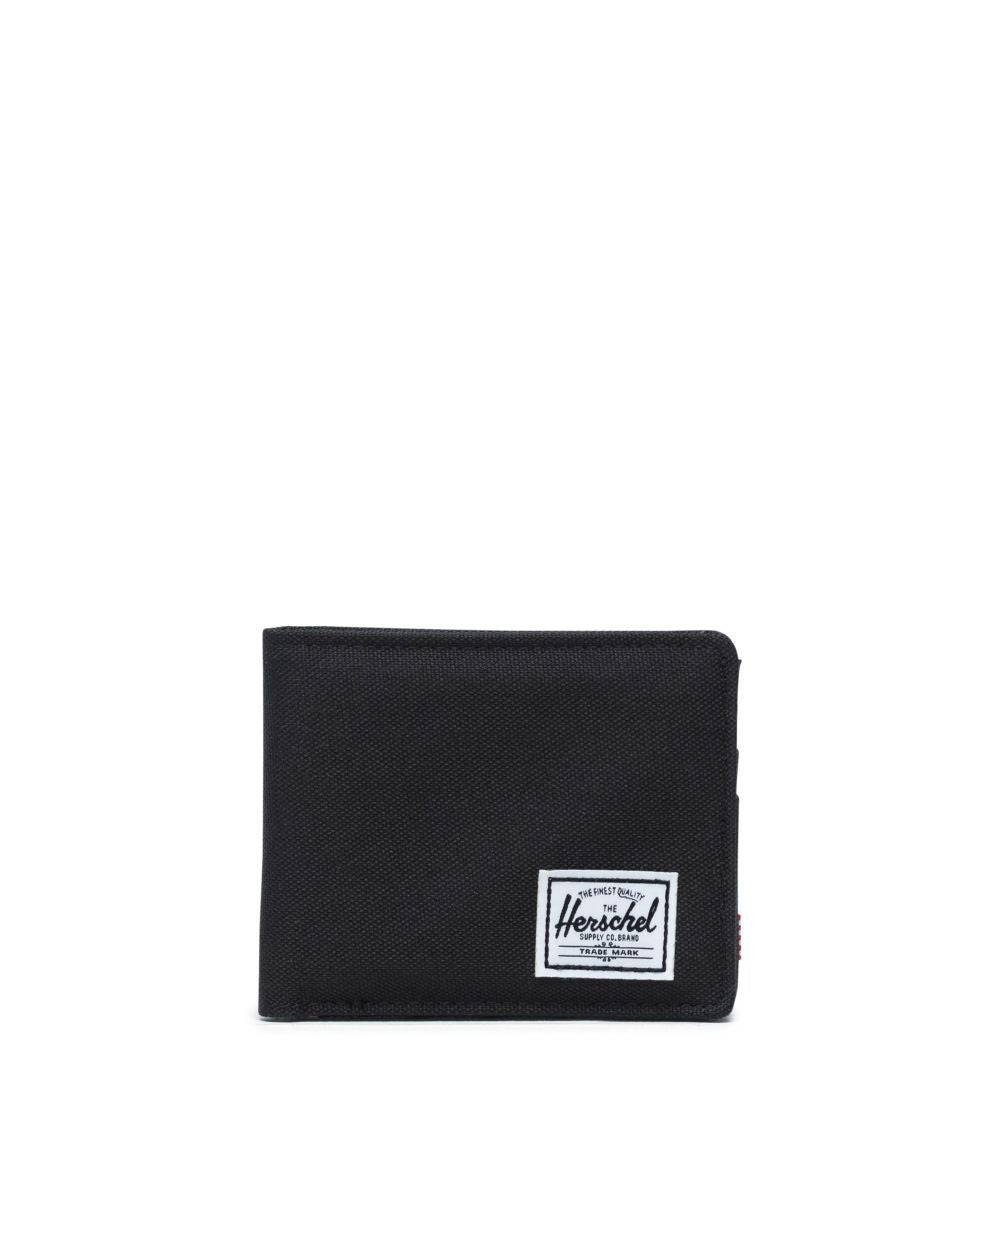 HERSCHEL - ROY WALLET IN BLACK OLD